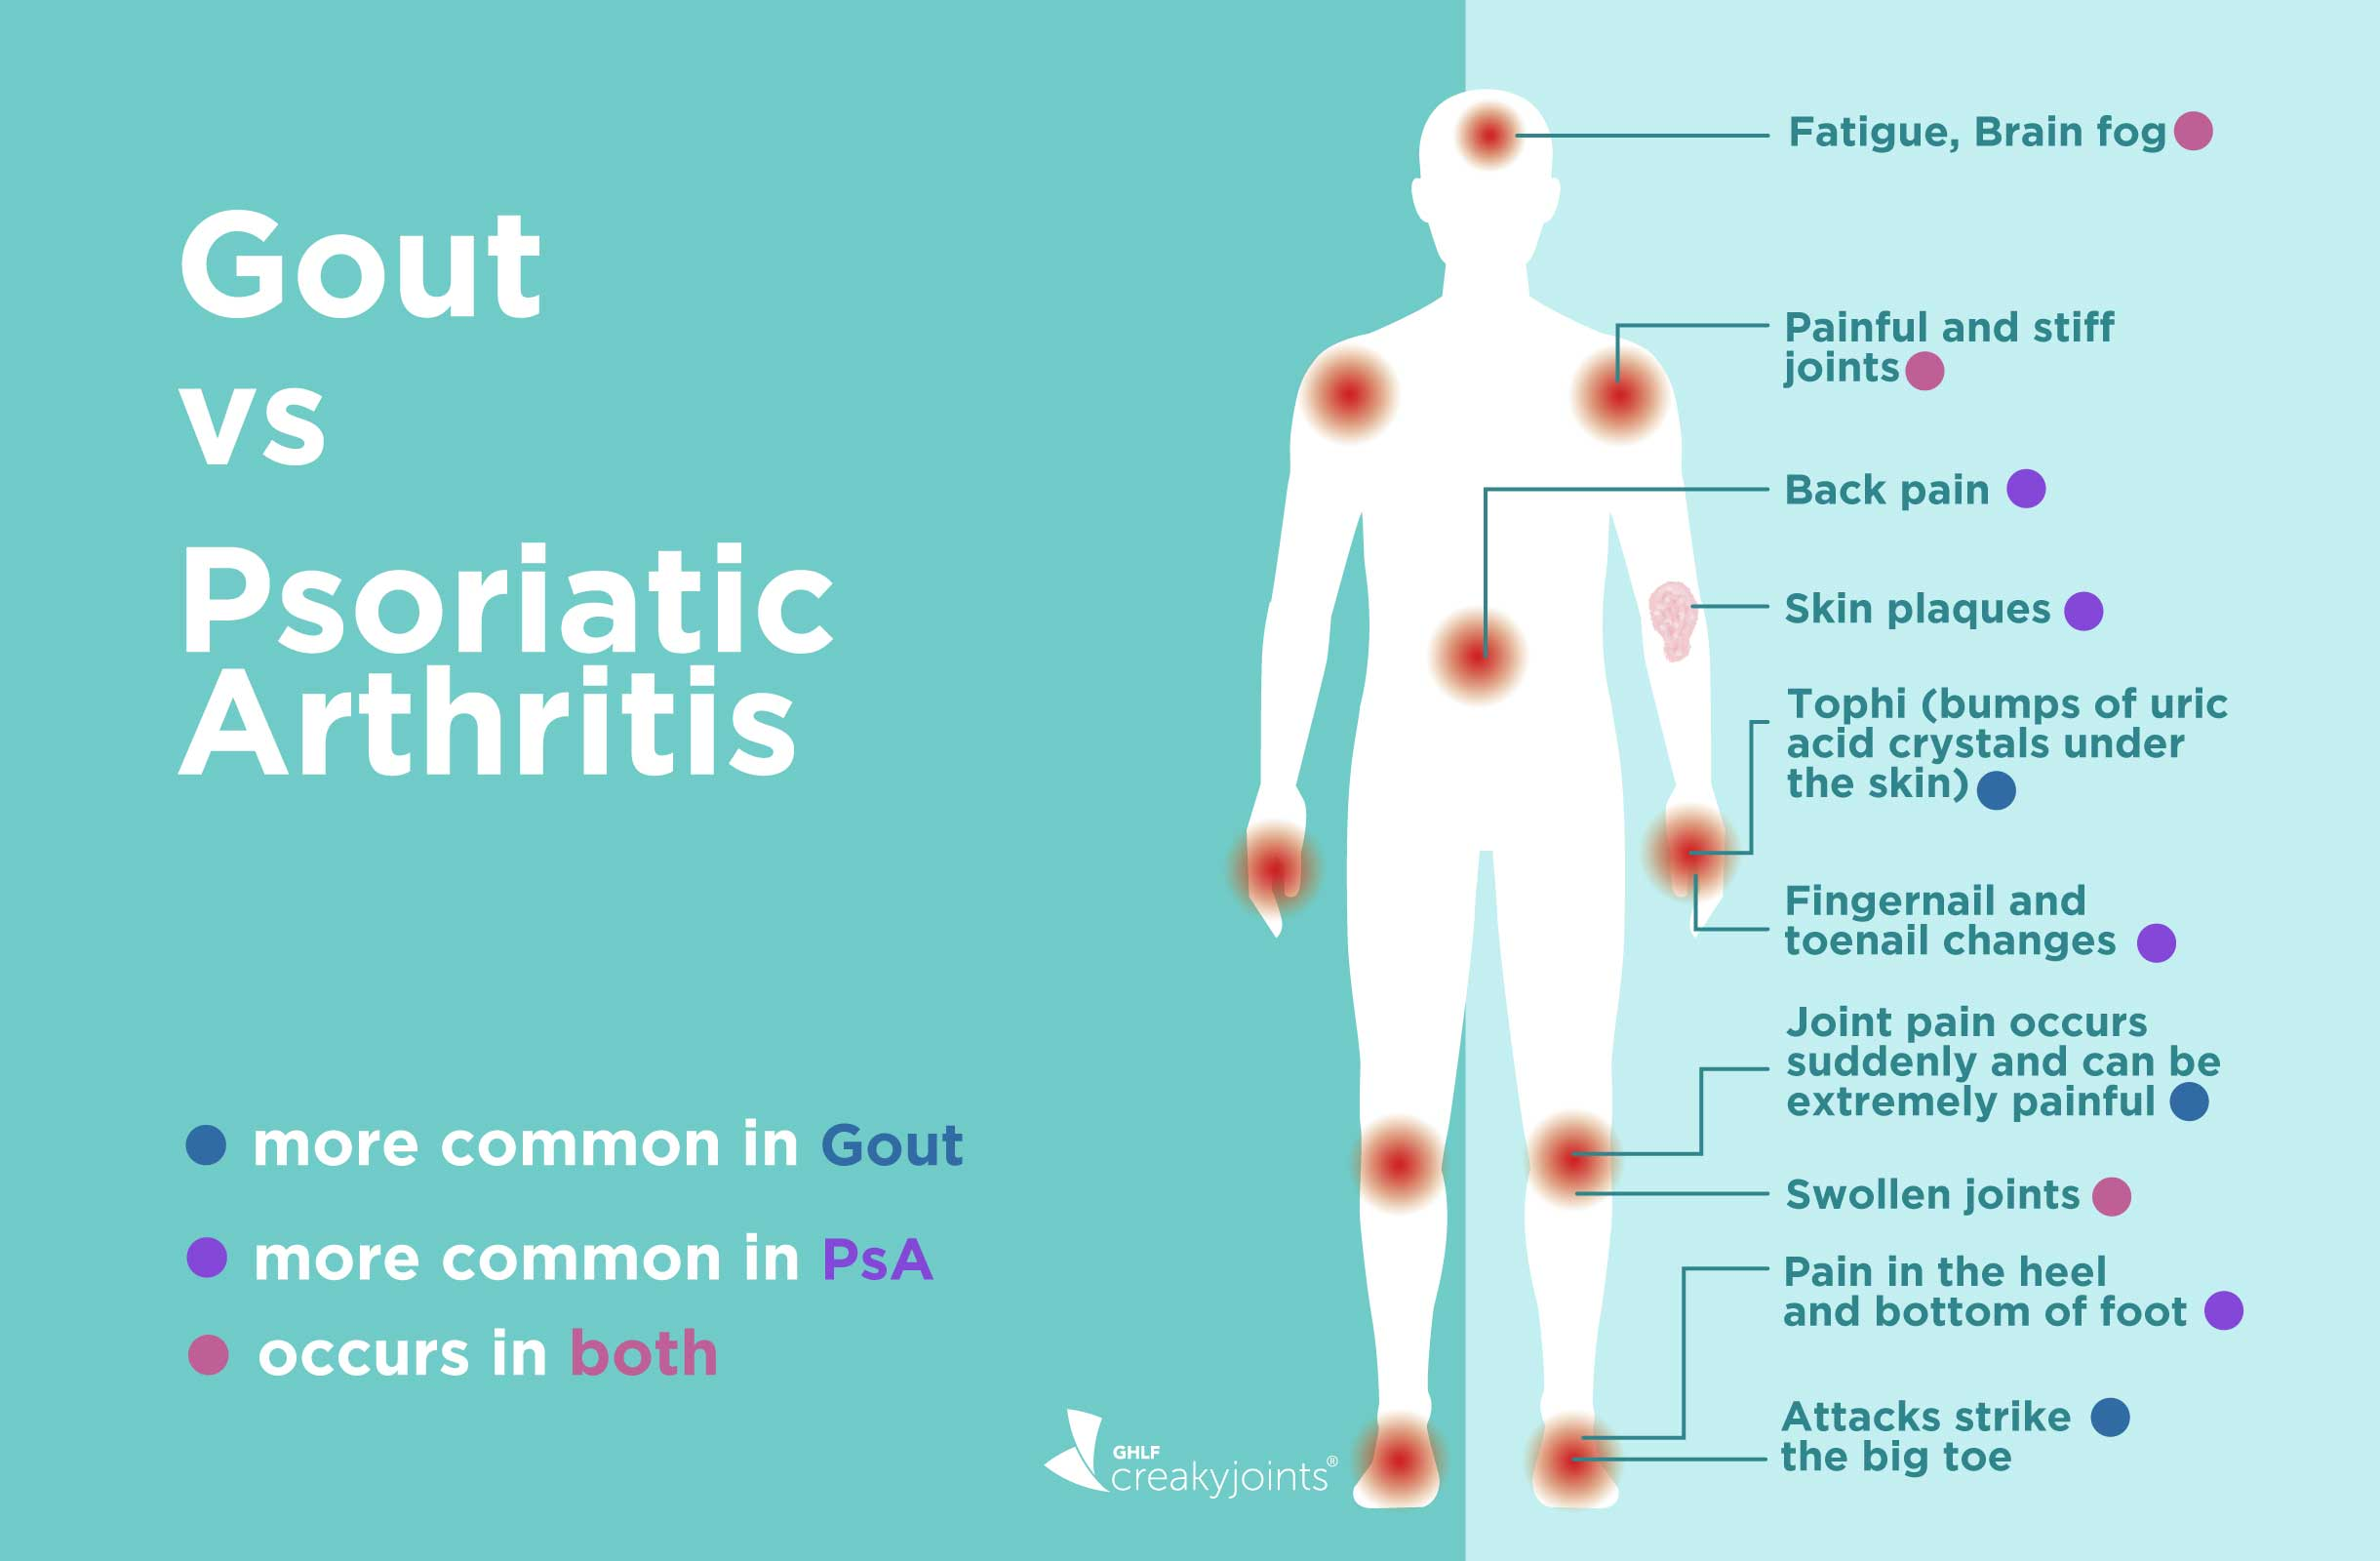 Gout Vs Psoriatic Arthritis Differences In Symptoms And Treatments